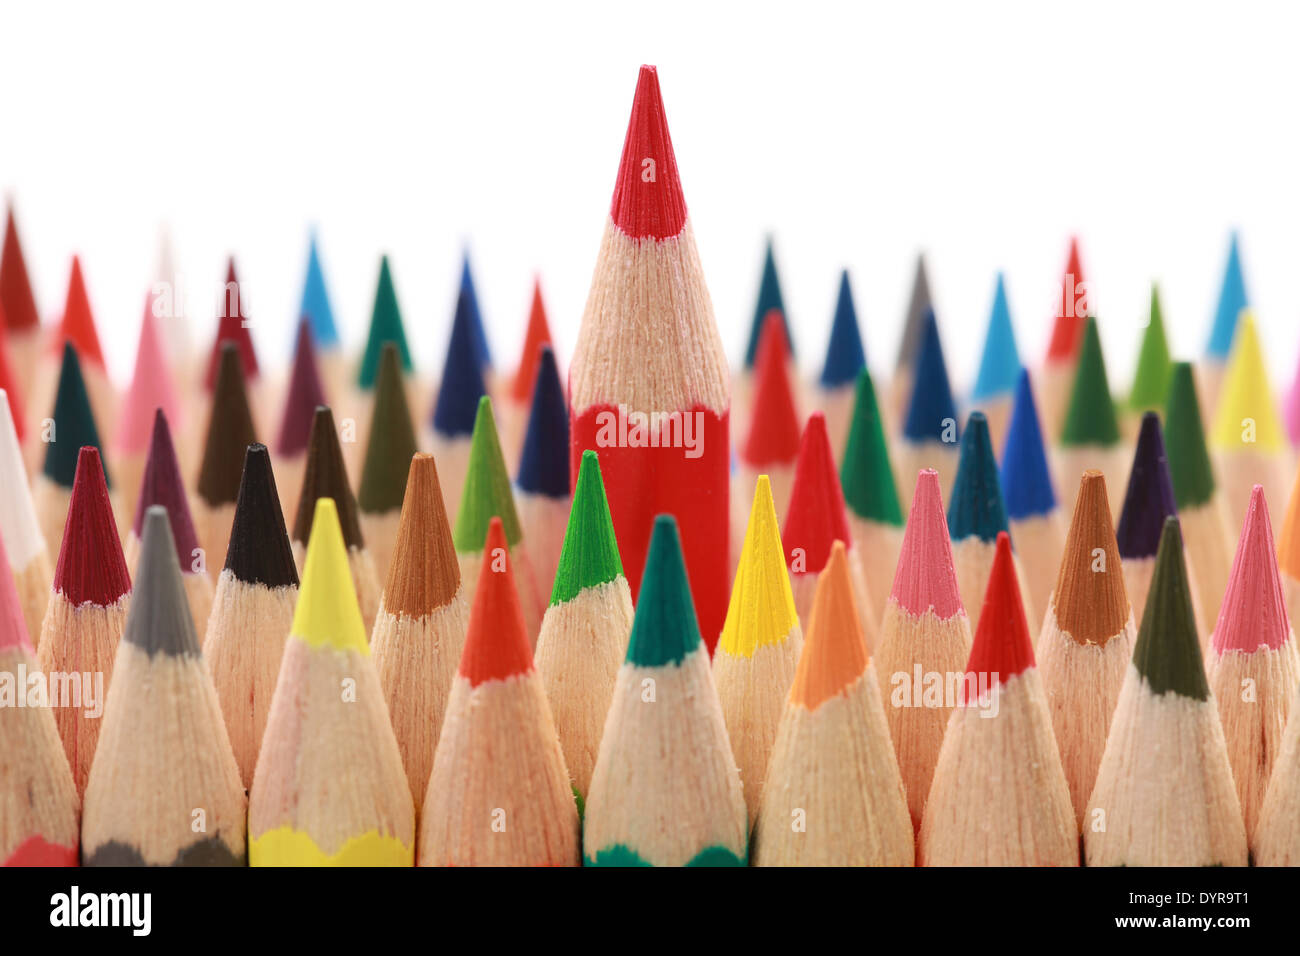 Business concepts: red crayon standing out from the crowd - Stock Image